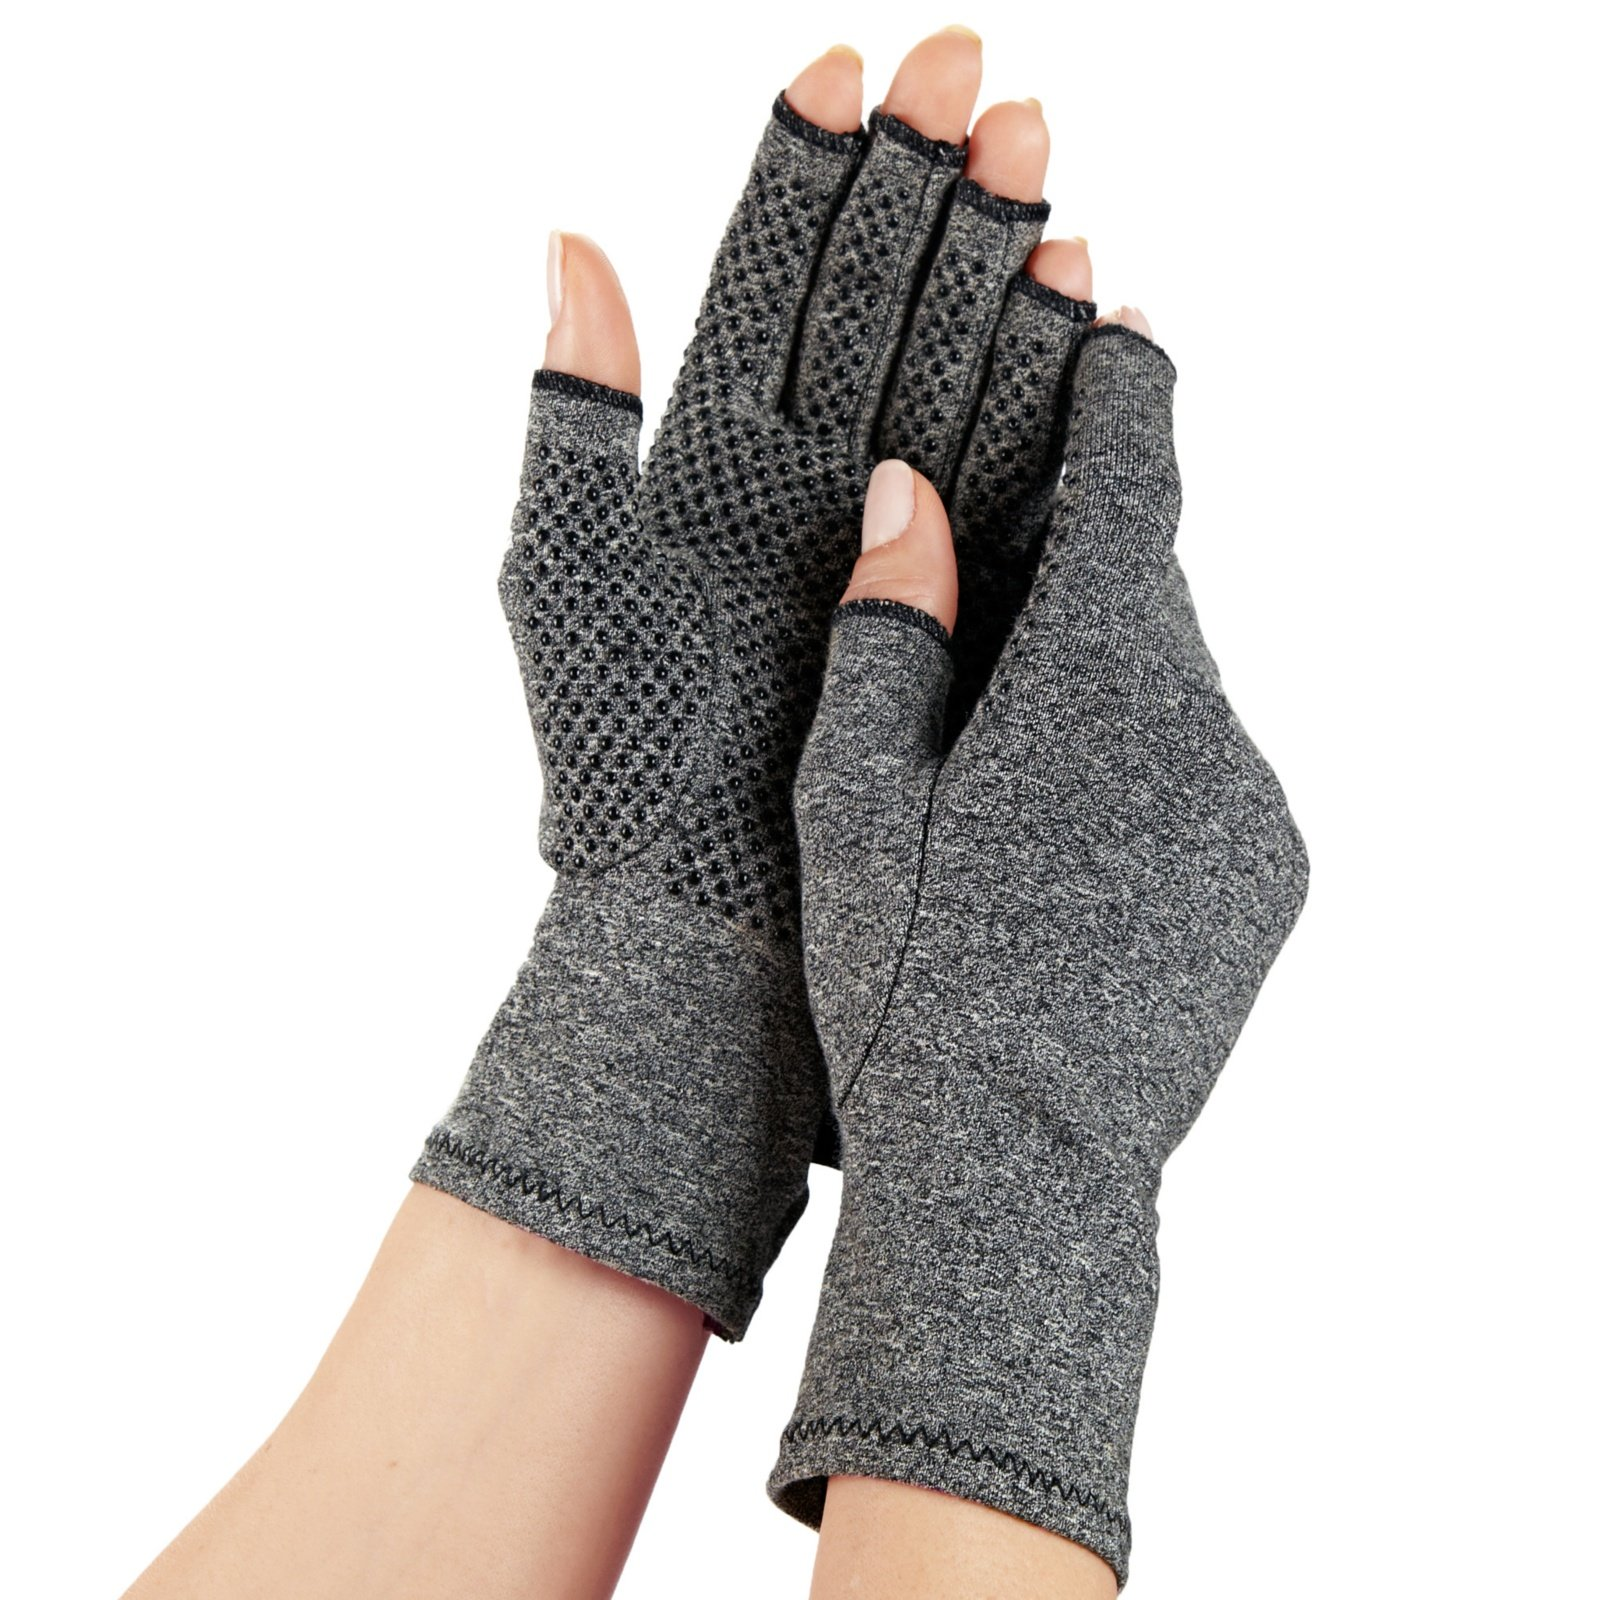 Amazon Com Imak Compression Arthritis Gloves Original With